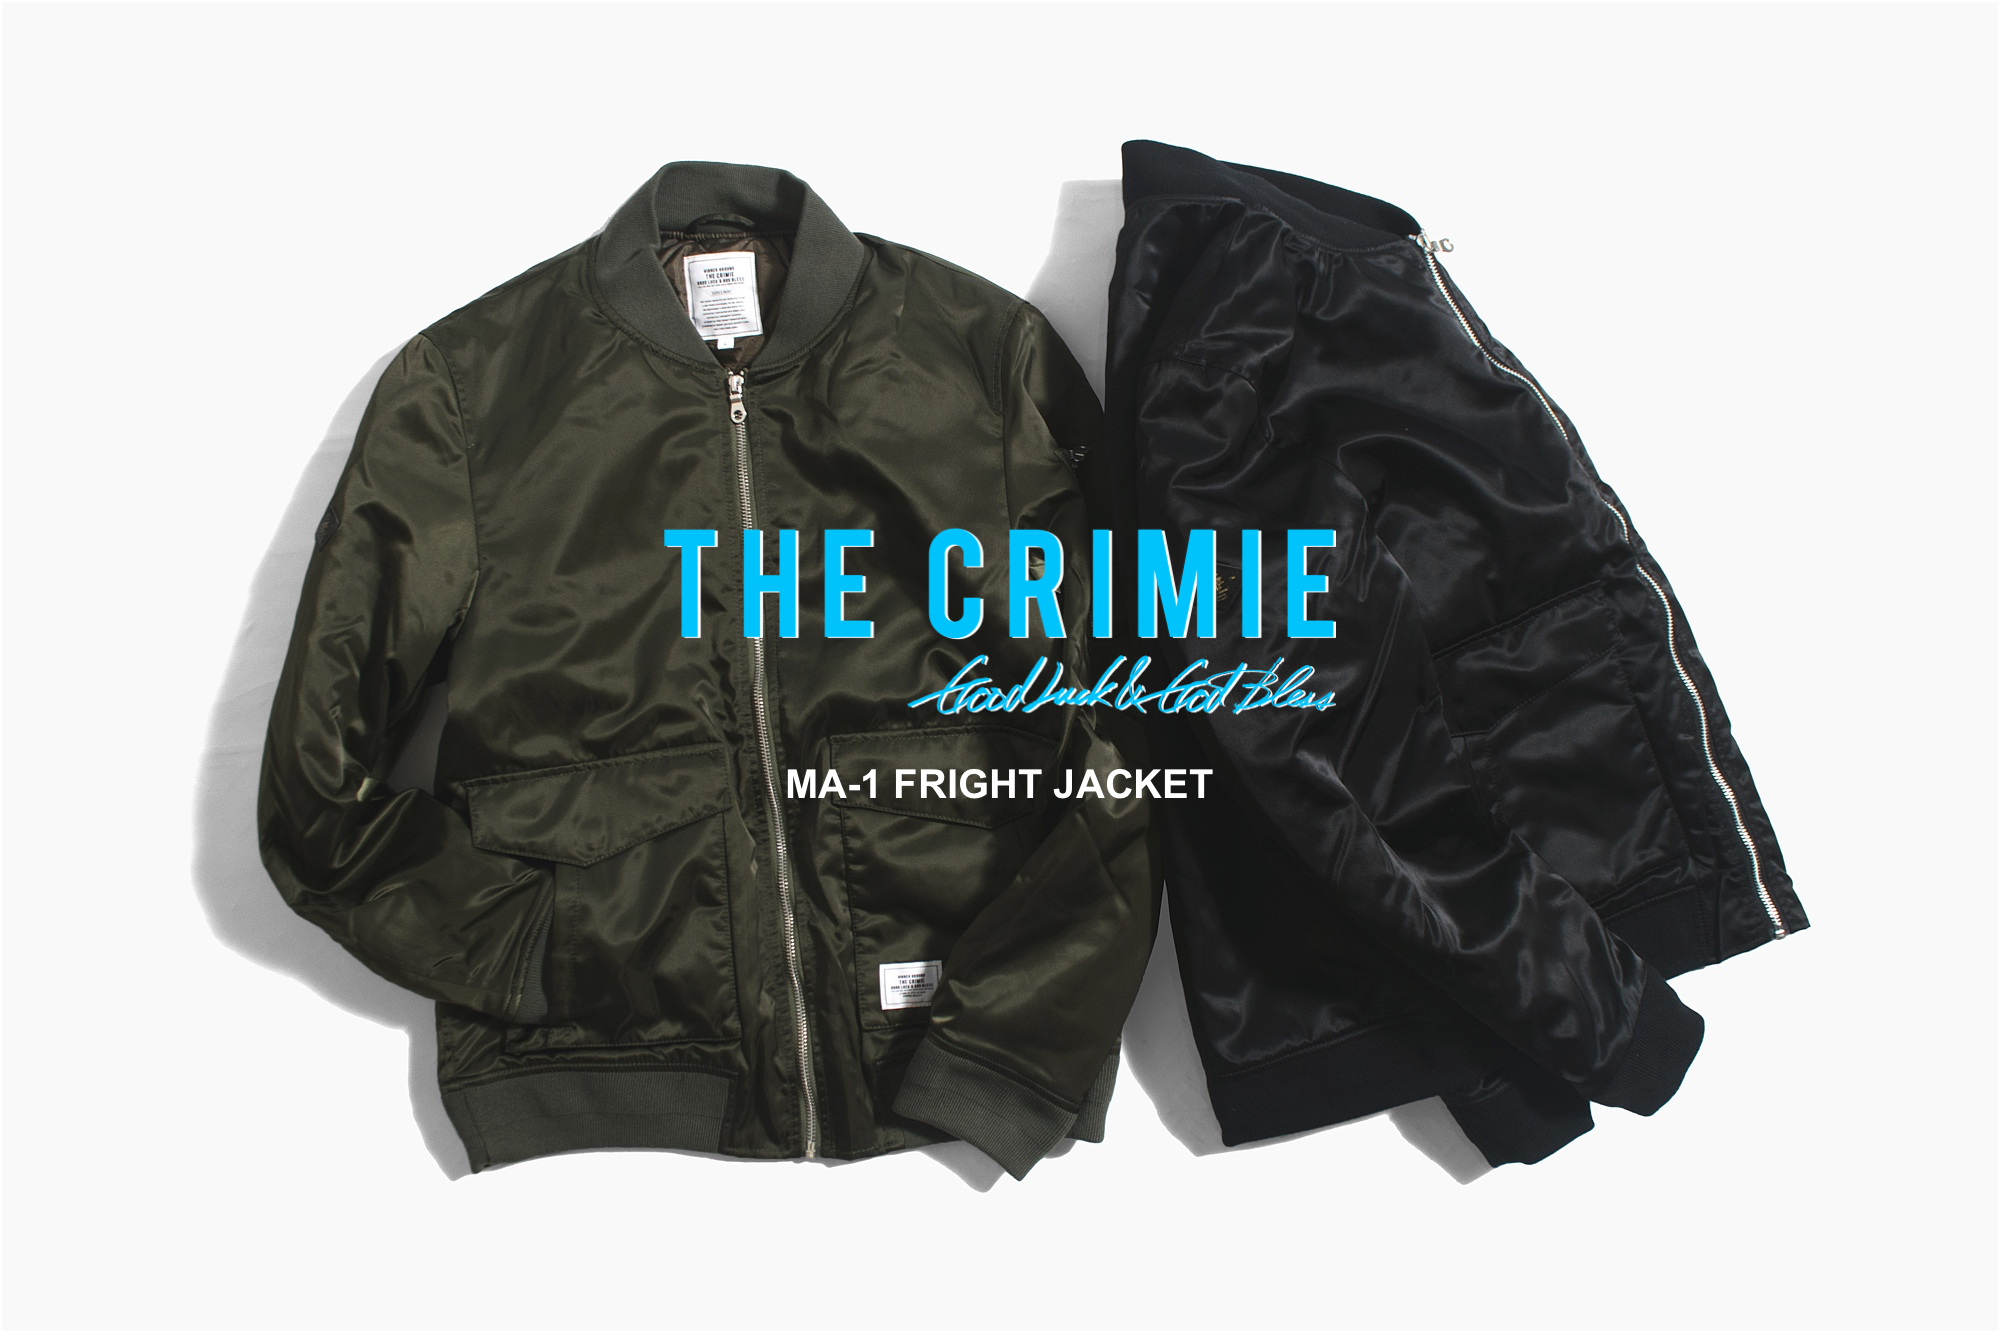 FRIGHT JACKET